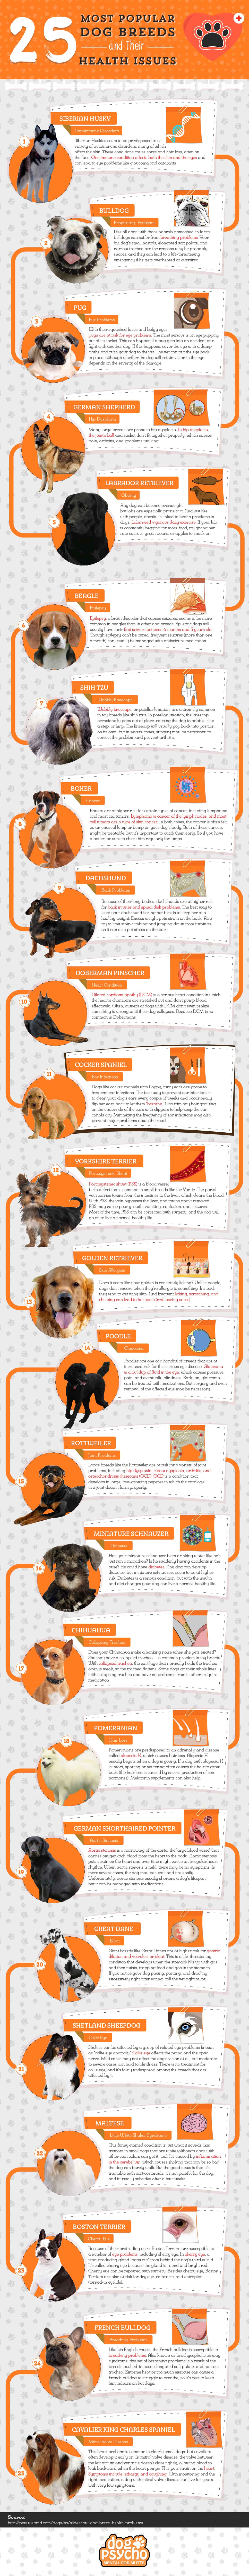 Popular Dog Breeds and Their Natural Health Problems